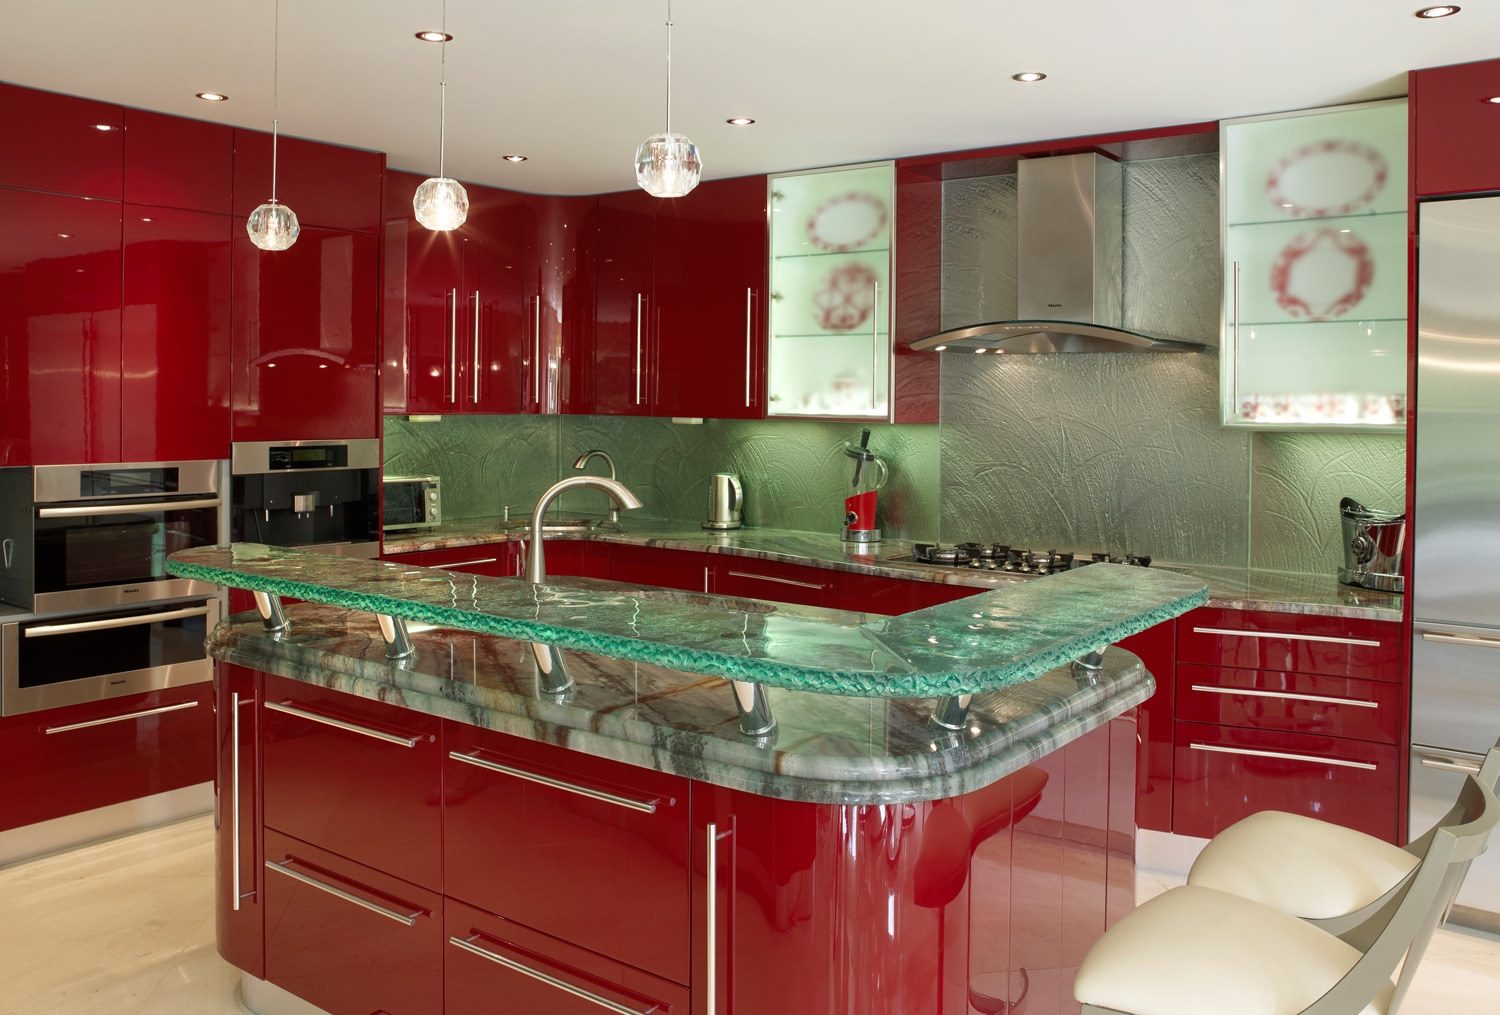 Counter glass harbor all glass mirror inc for All glass kitchen cabinets